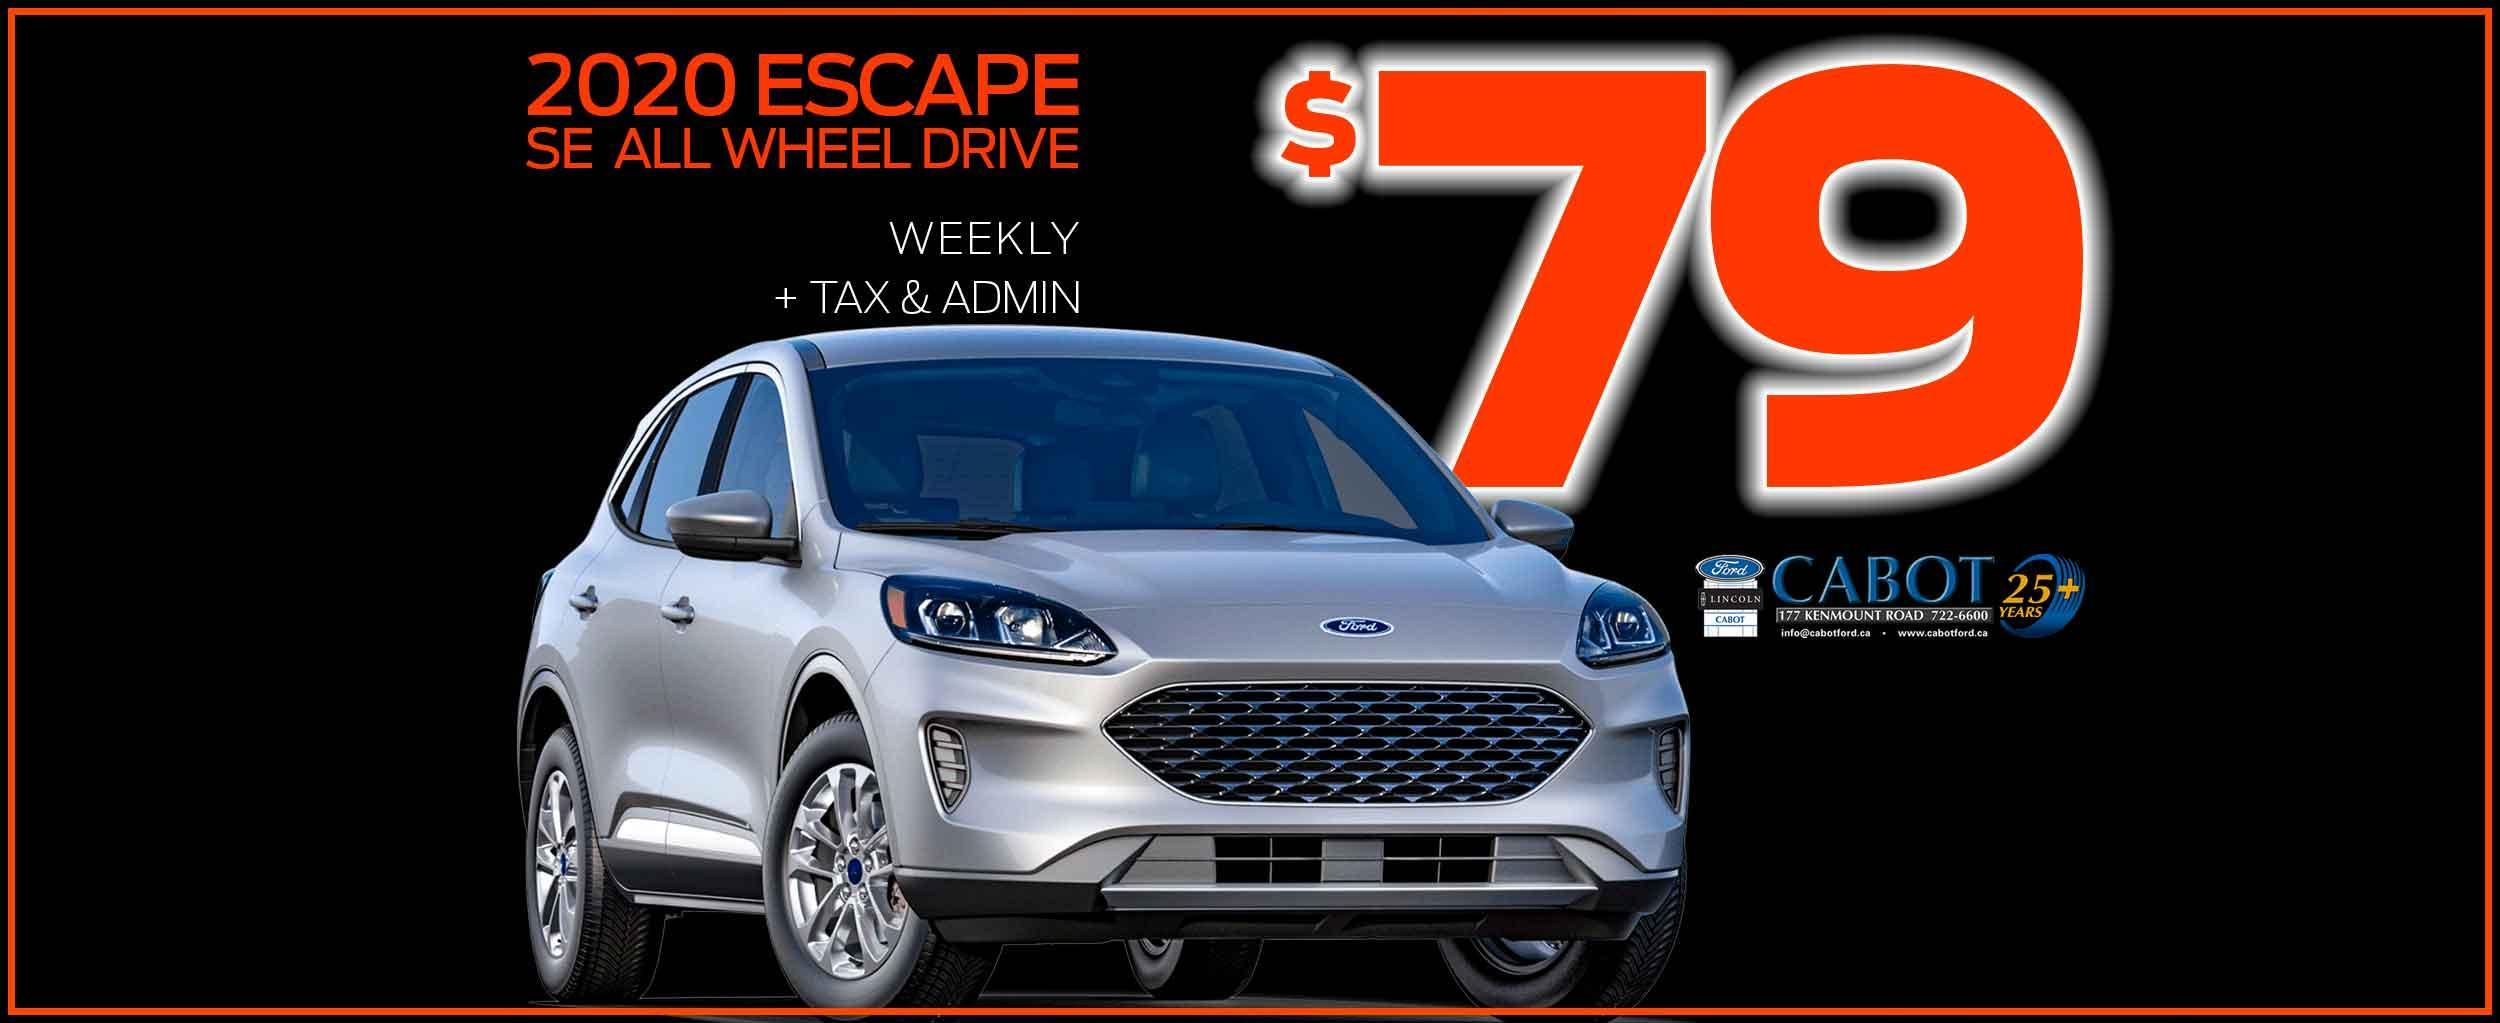 """SCARY SAVINGS on the 2020 Escape SE AWD! Just $79 weekly + tax & admin! Heated front seats, 17"""" Shadow Silver painted aluminum wheels, Dual heated power mirrors, and so much more!"""